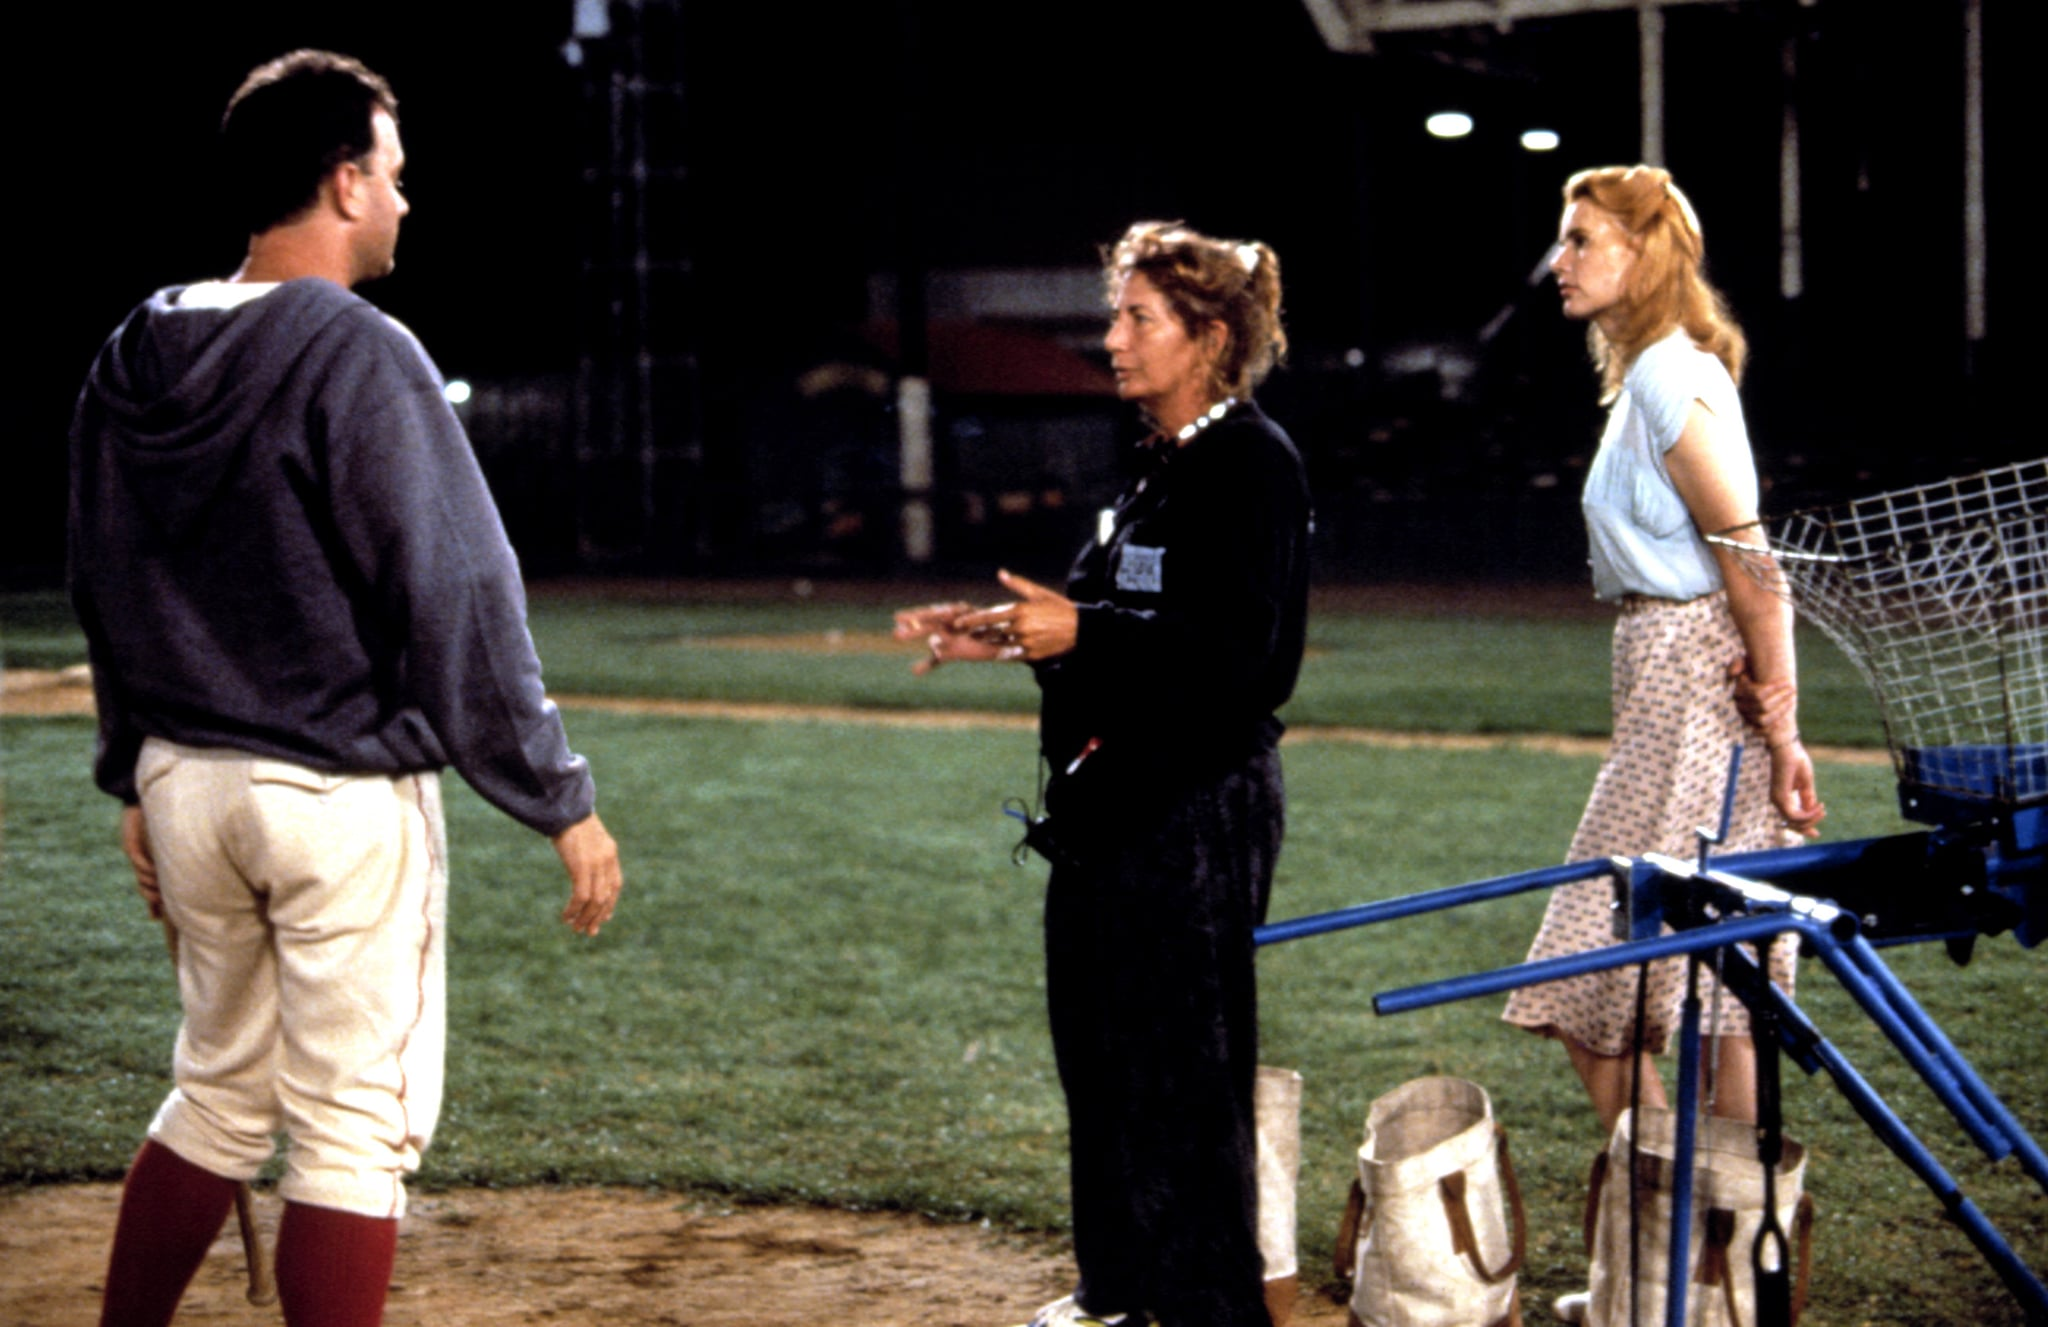 A LEAGUE OF THEIR OWN, Tom Hanks, Penny Marshall, Geena Davis on set, 1992, (c)Columbia Pictures/courtesy Everett Collection